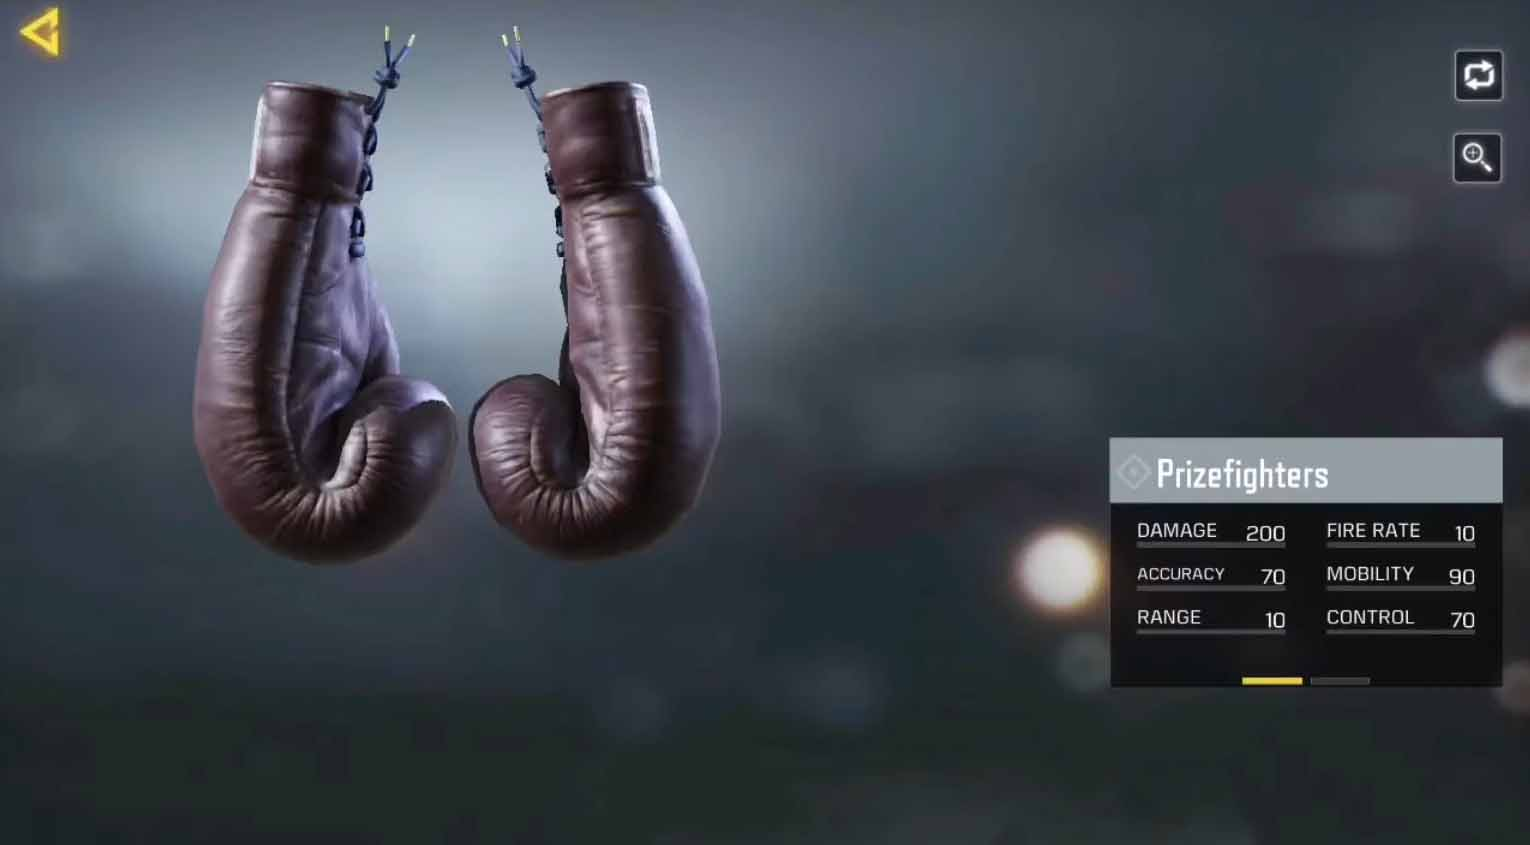 Call of Duty: Mobile Prizefighters stats